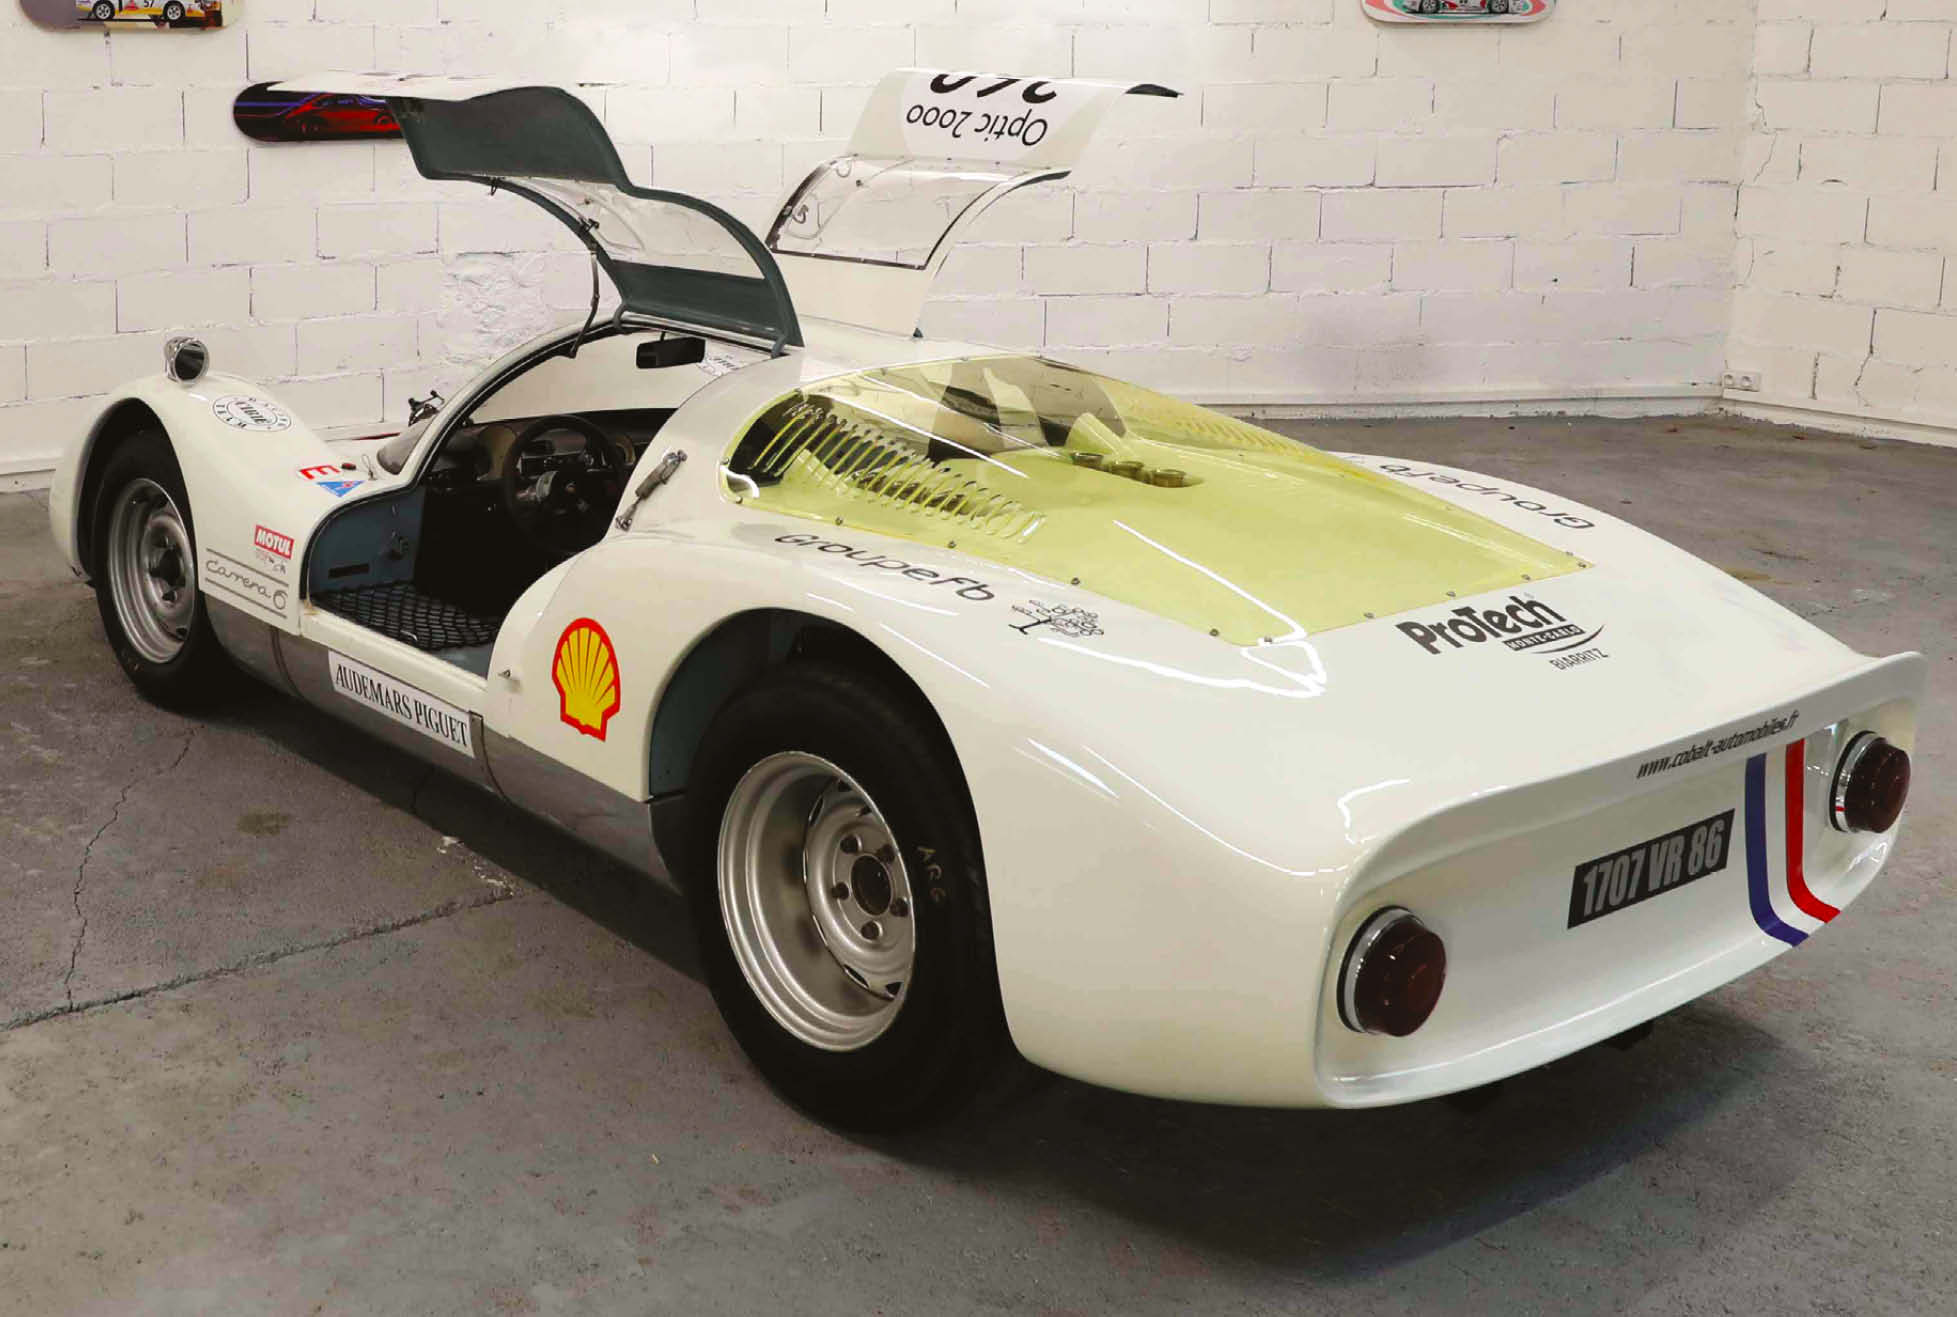 Porsche 906 chassis 114 has a comprehensive competition history to go along with it